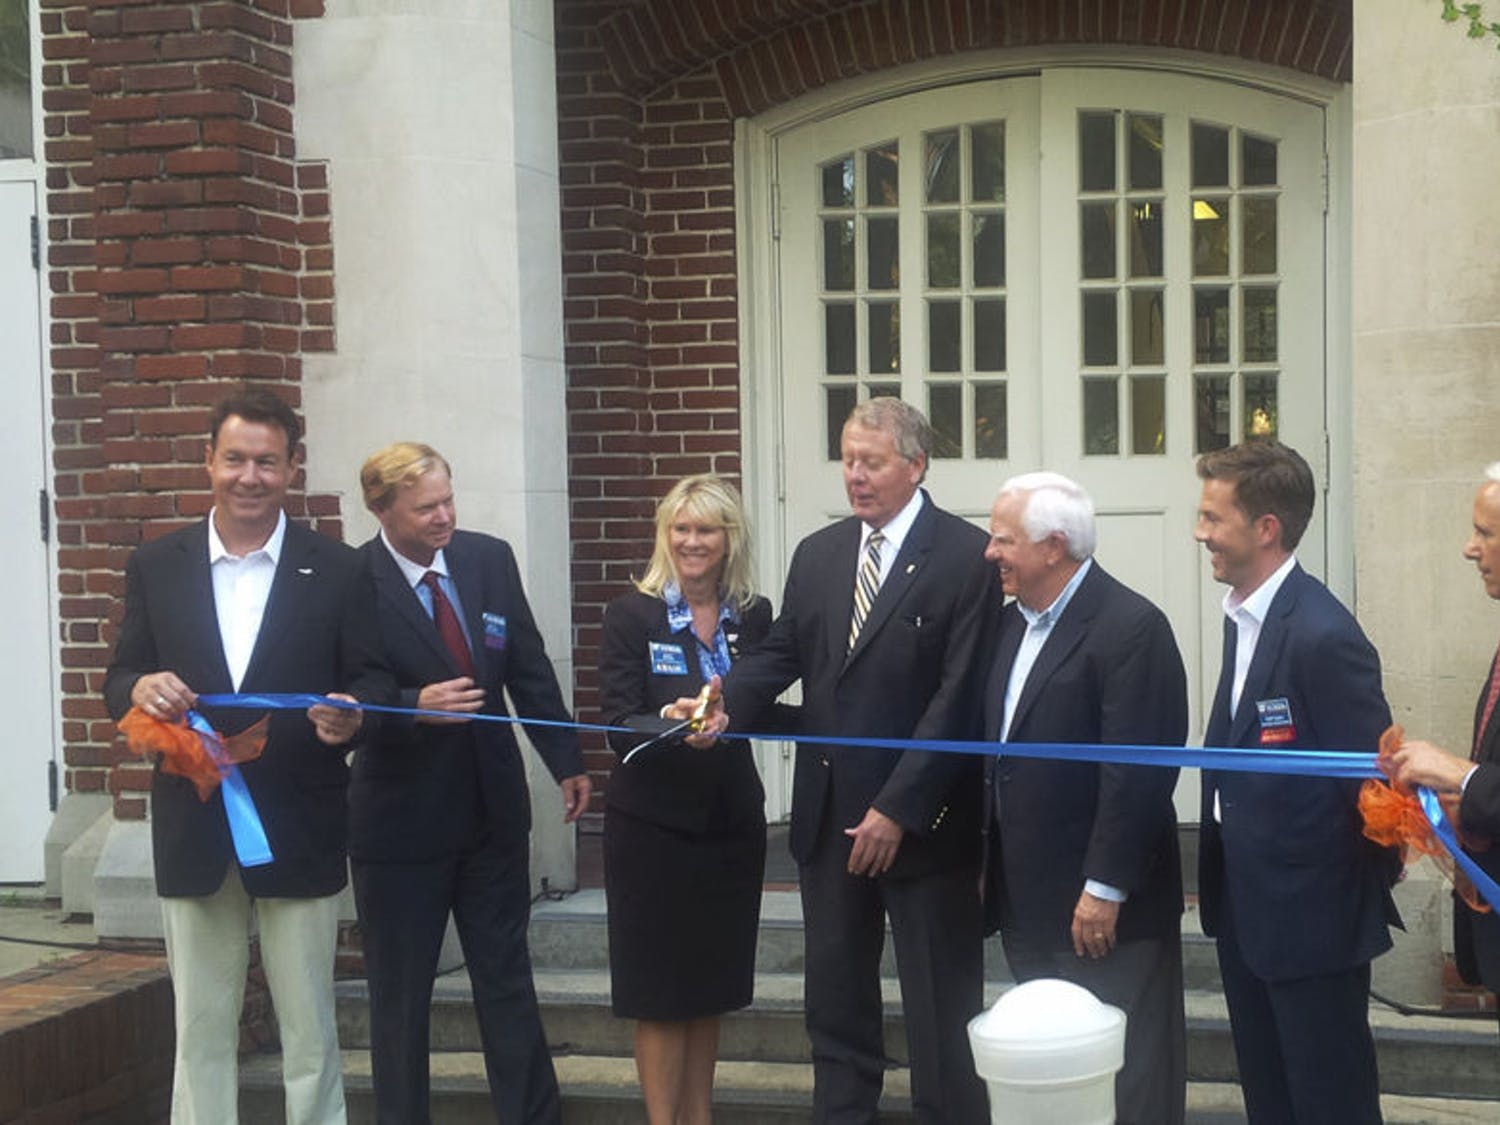 John Kraft, far right, Dean of the Warrington College of Business, watches during the ribbon-cutting of the newly renovated Kelley A. Bergstrom Center for Real Estate Studies at Bryan Hall in September 2015.